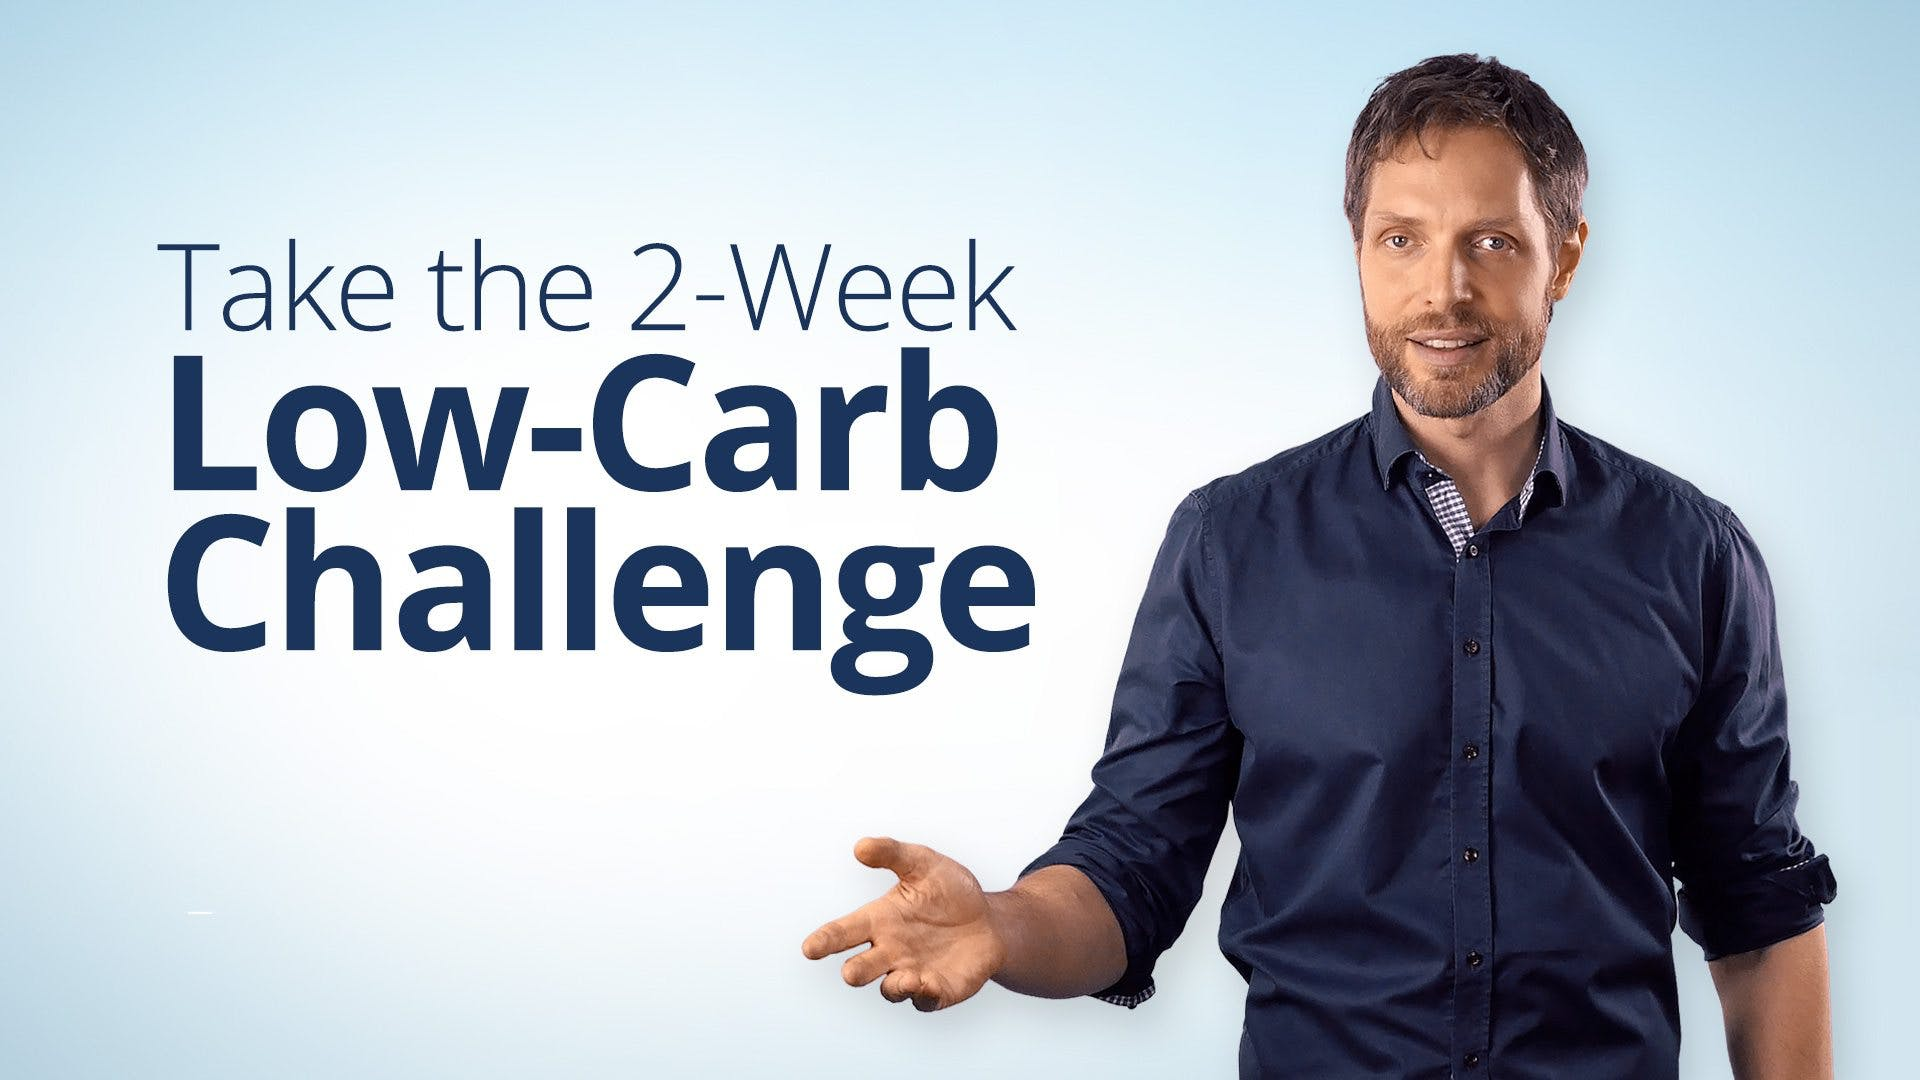 The Low-Carb Challenge